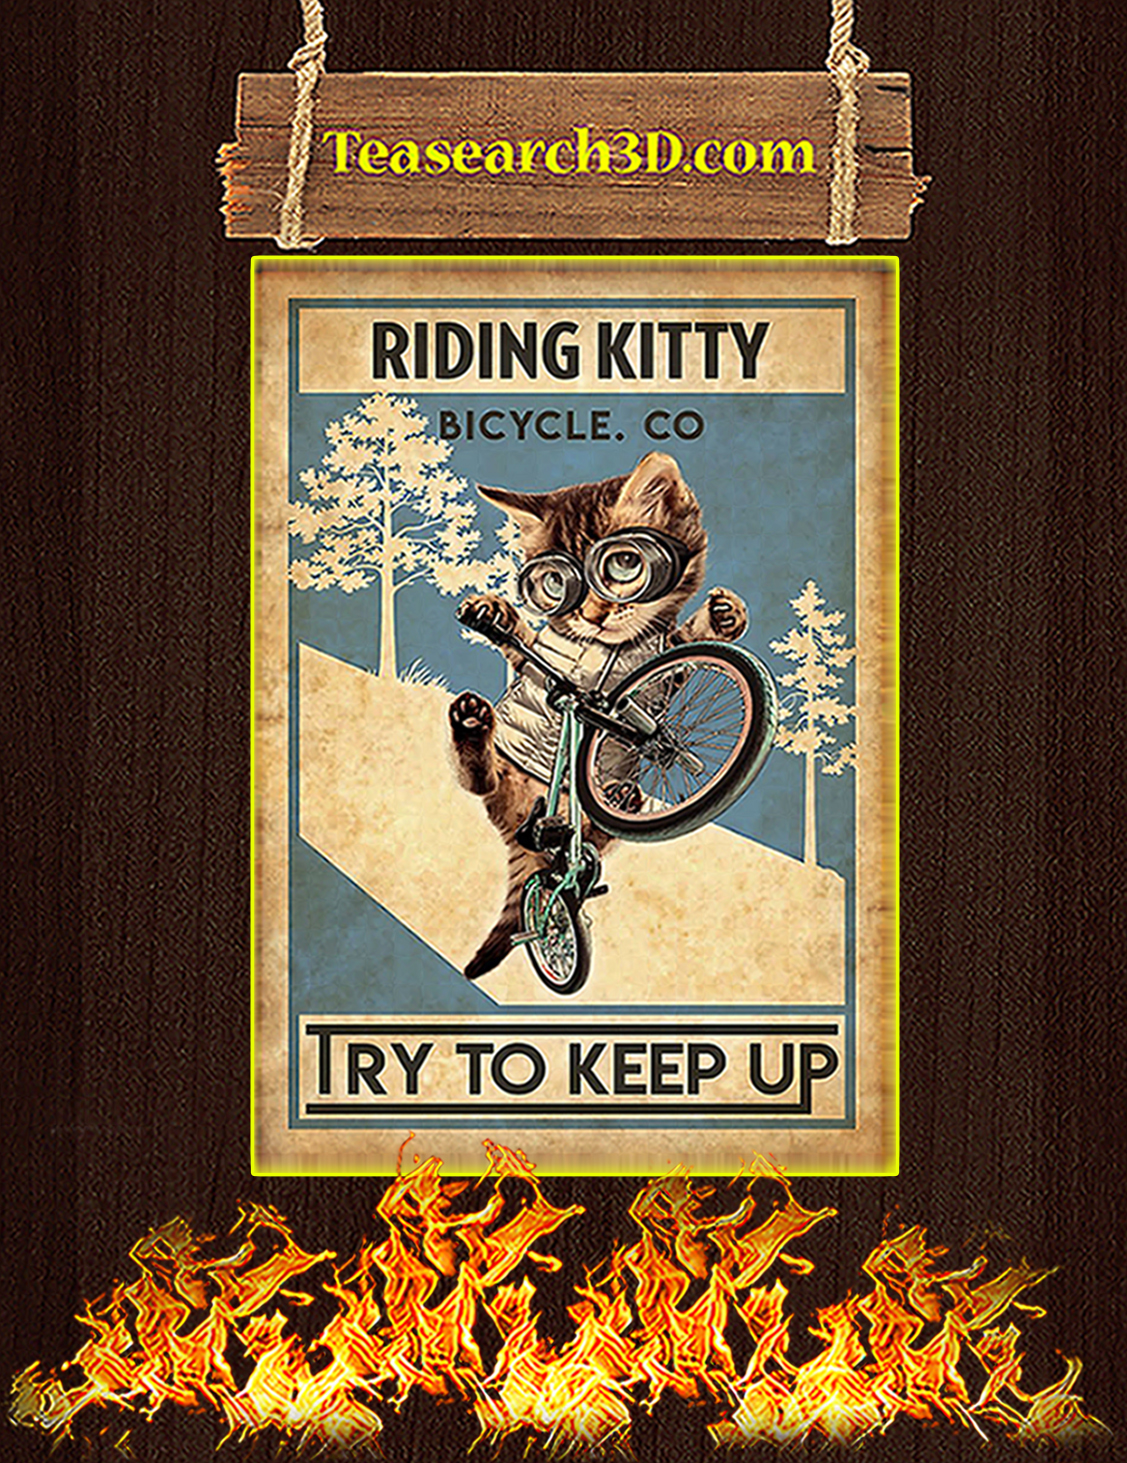 Cat riding kitty bicycle co try to keep up poster A3